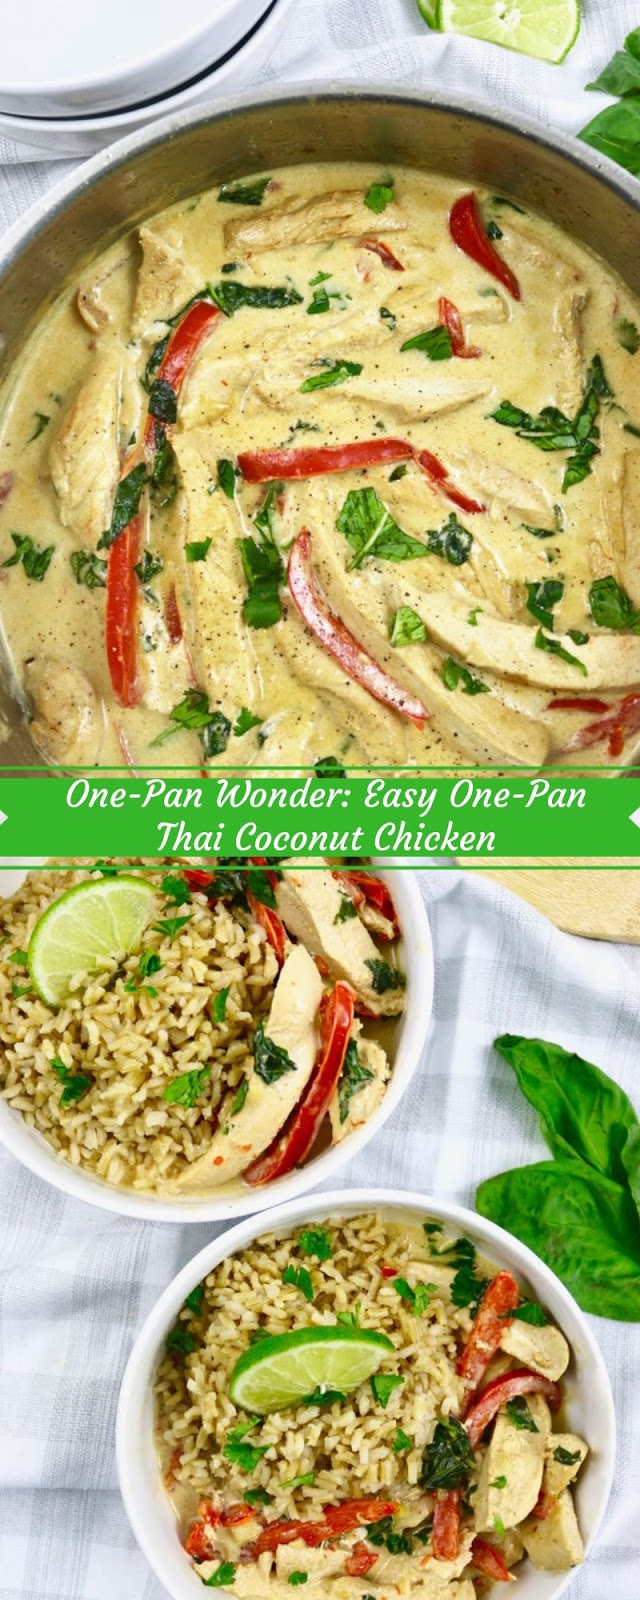 One-Pan Wonder: Easy One-Pan Thai Coconut Chicken